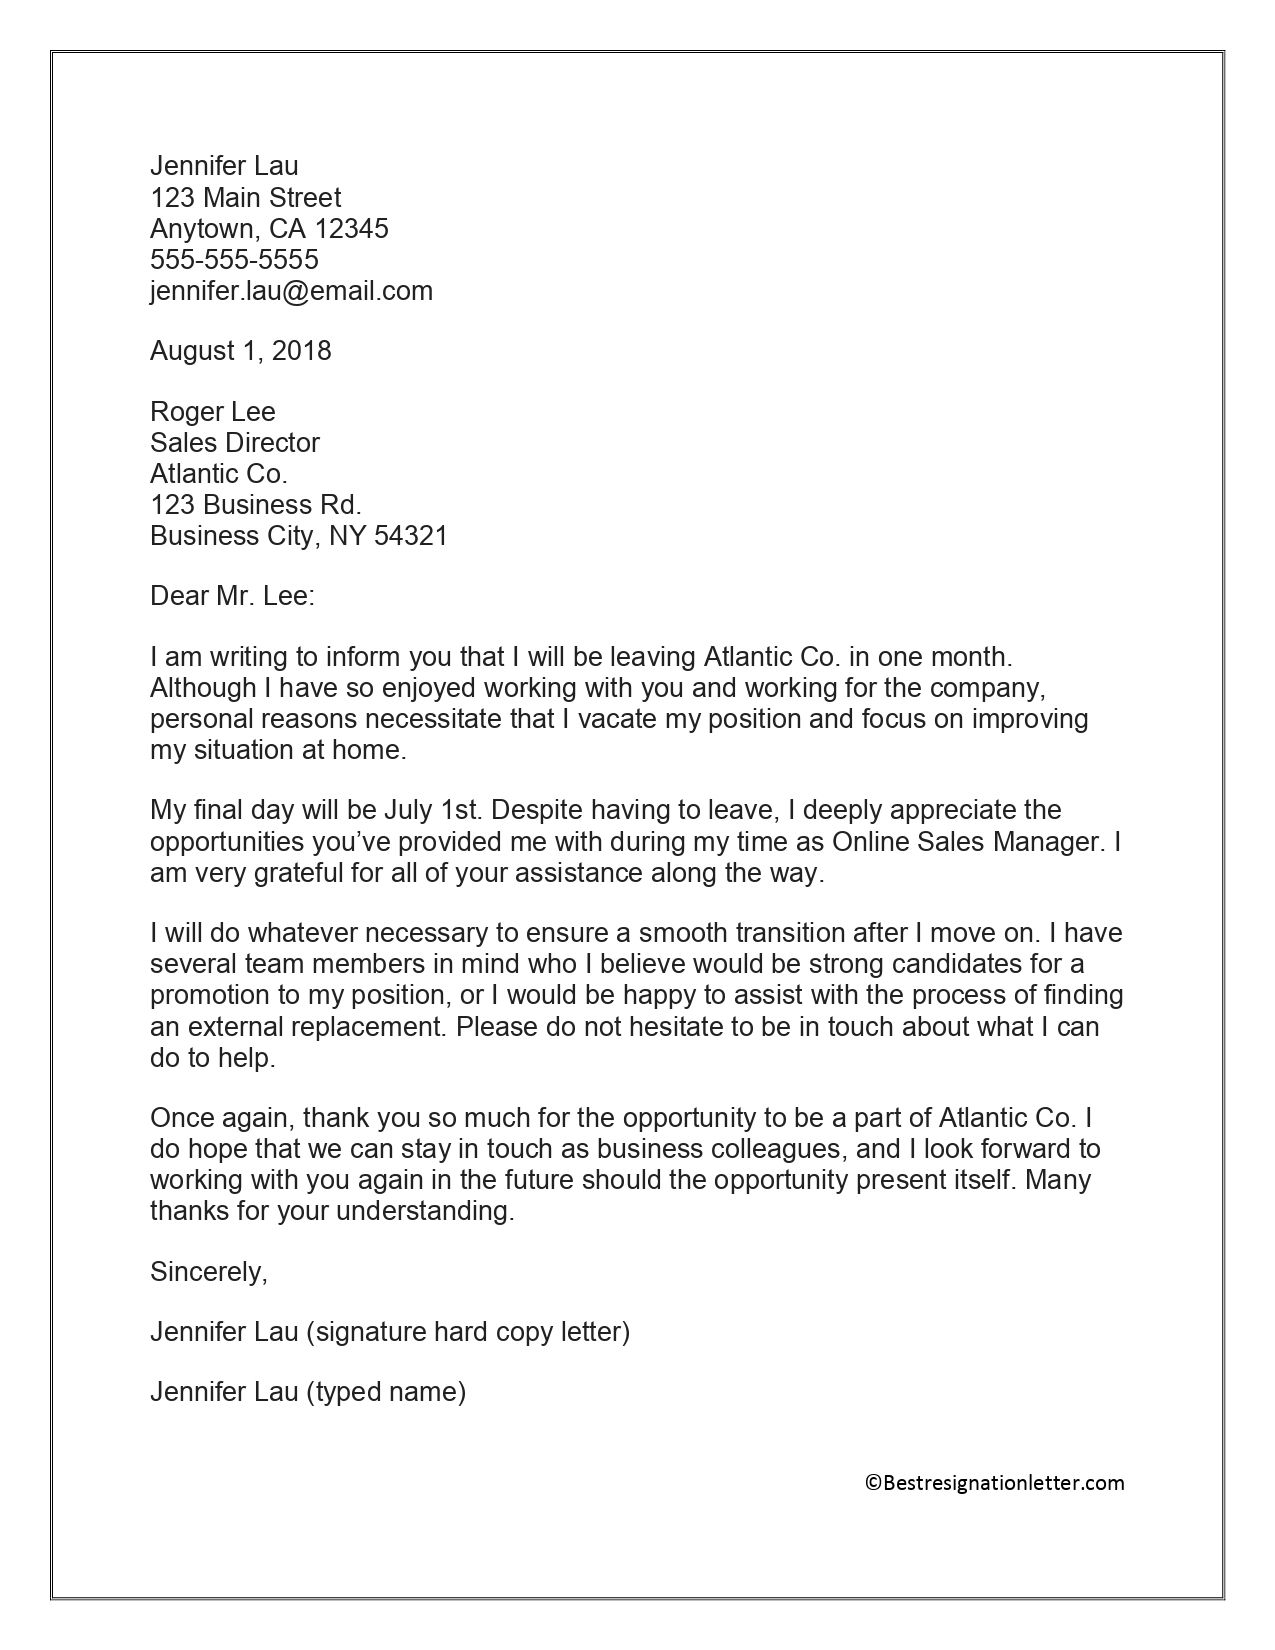 Pin on Resignation letter format